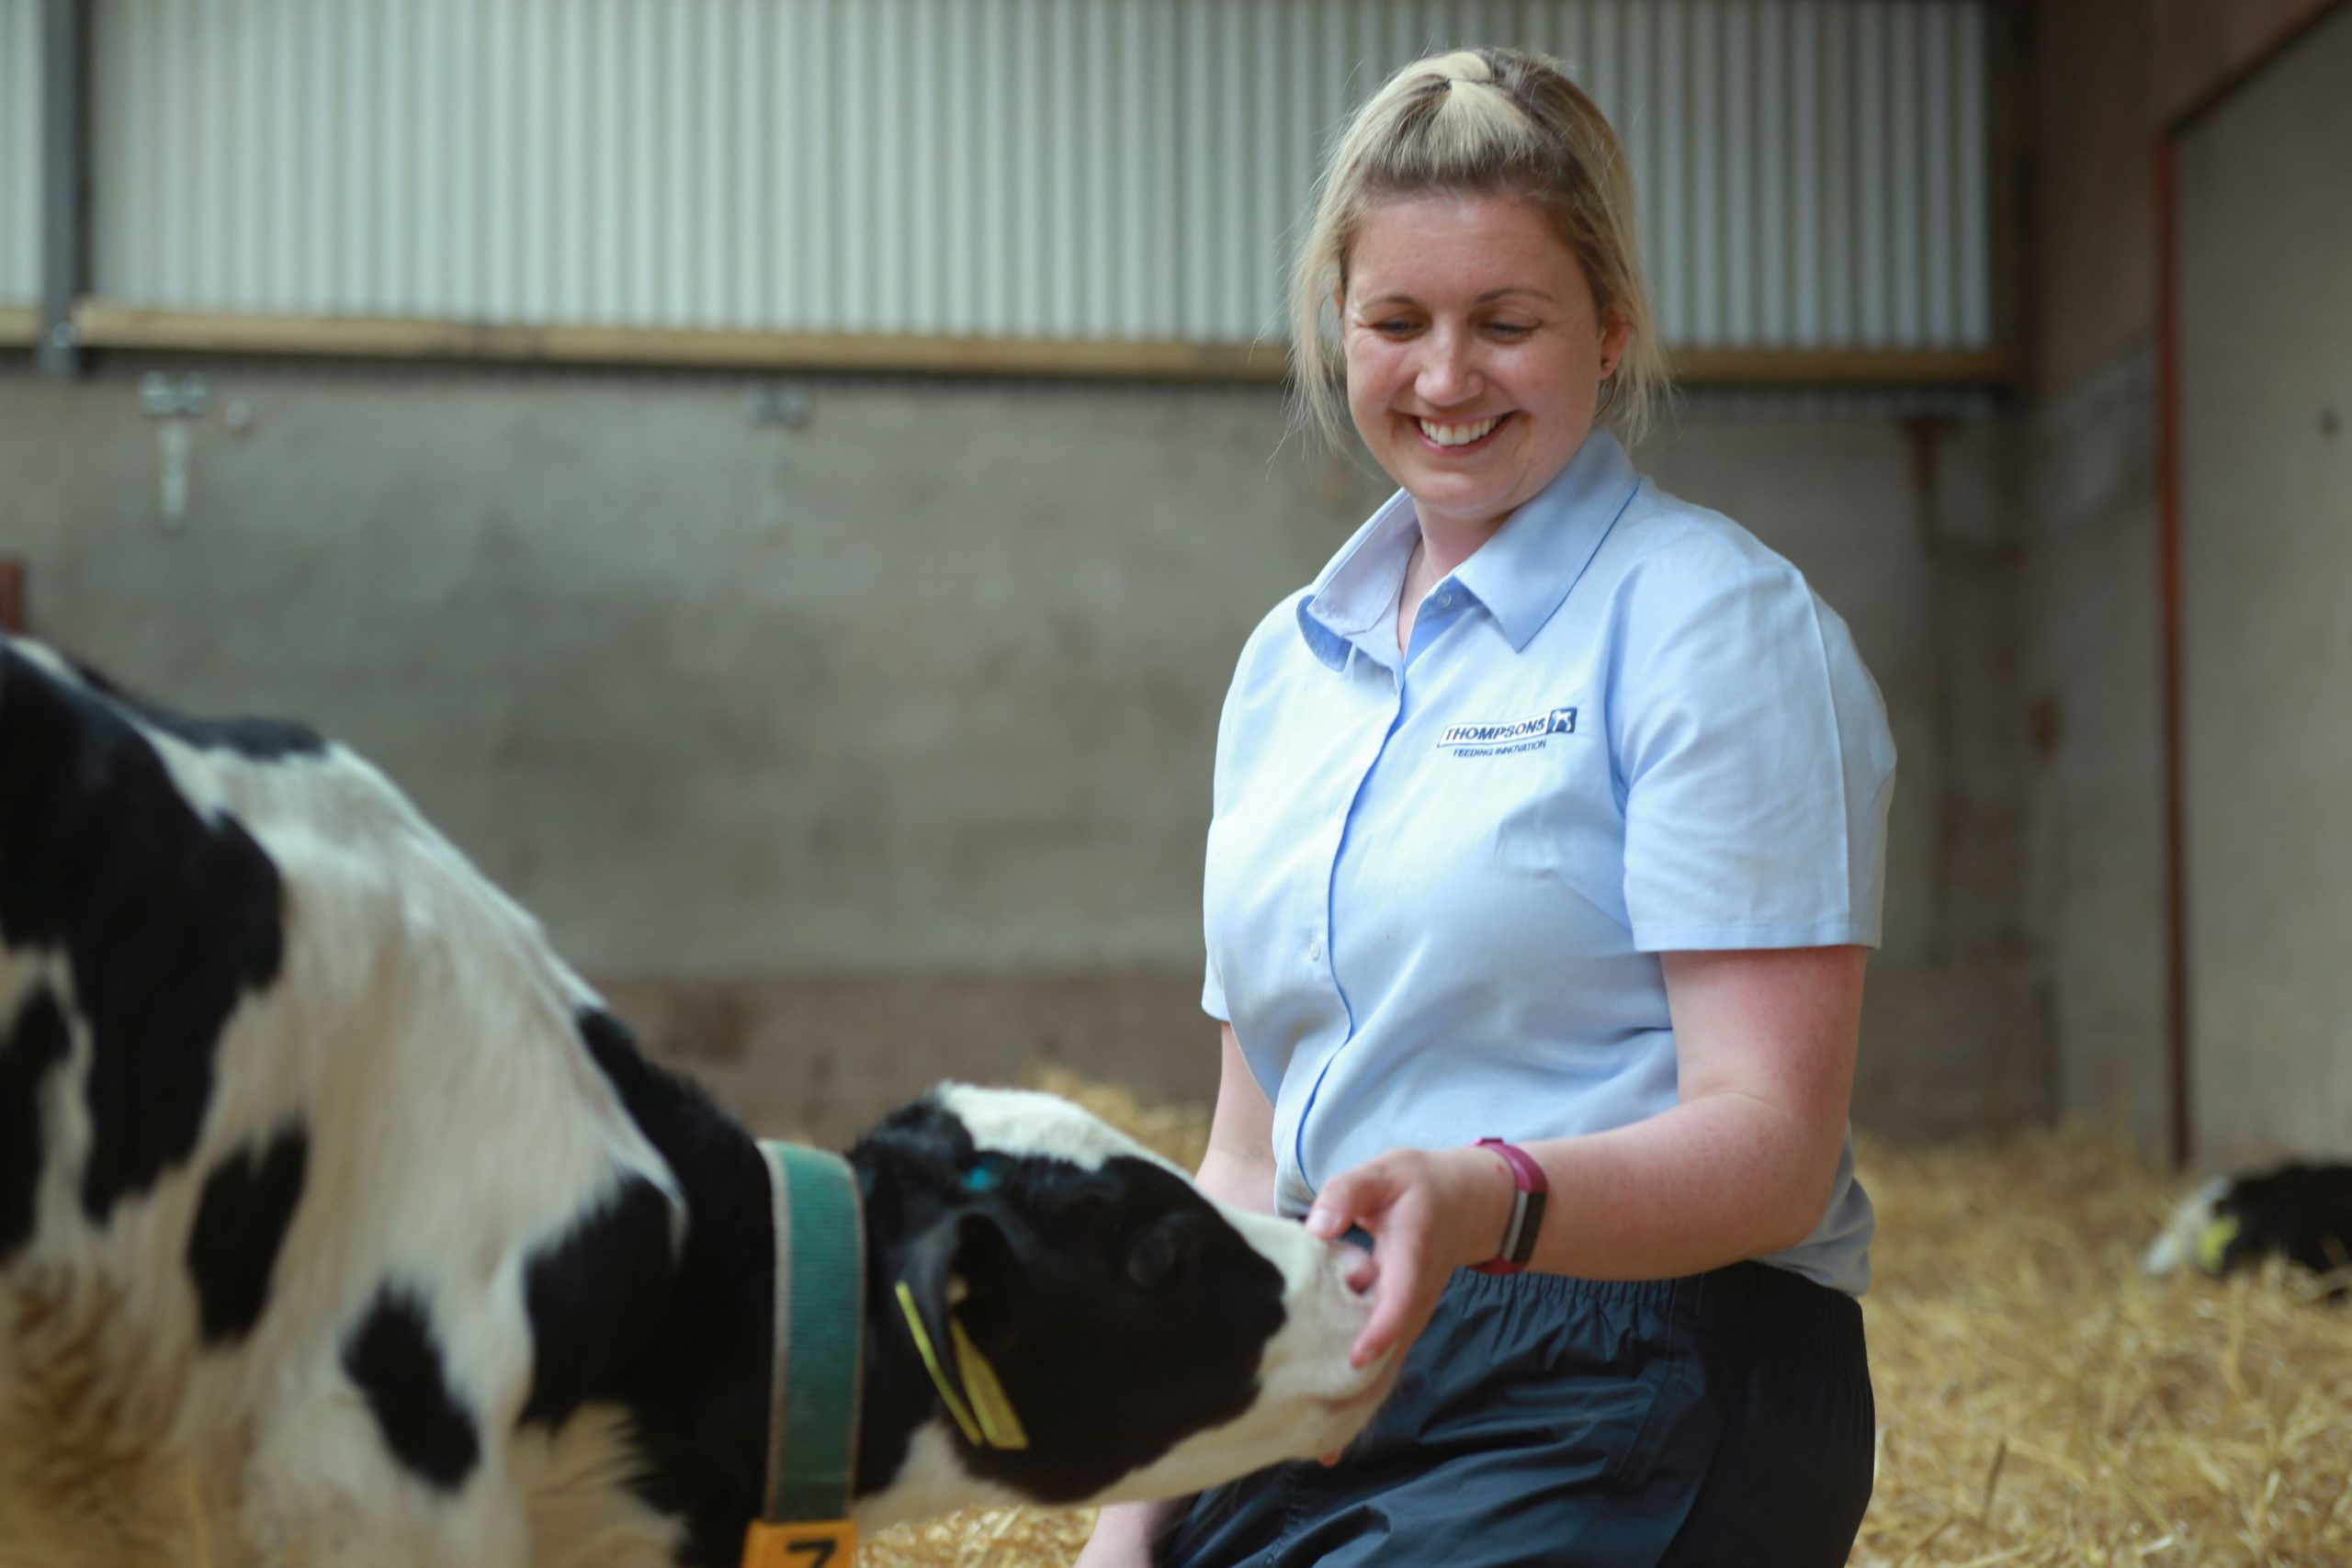 agri careers, farm girls, women in agriculture, women in farming